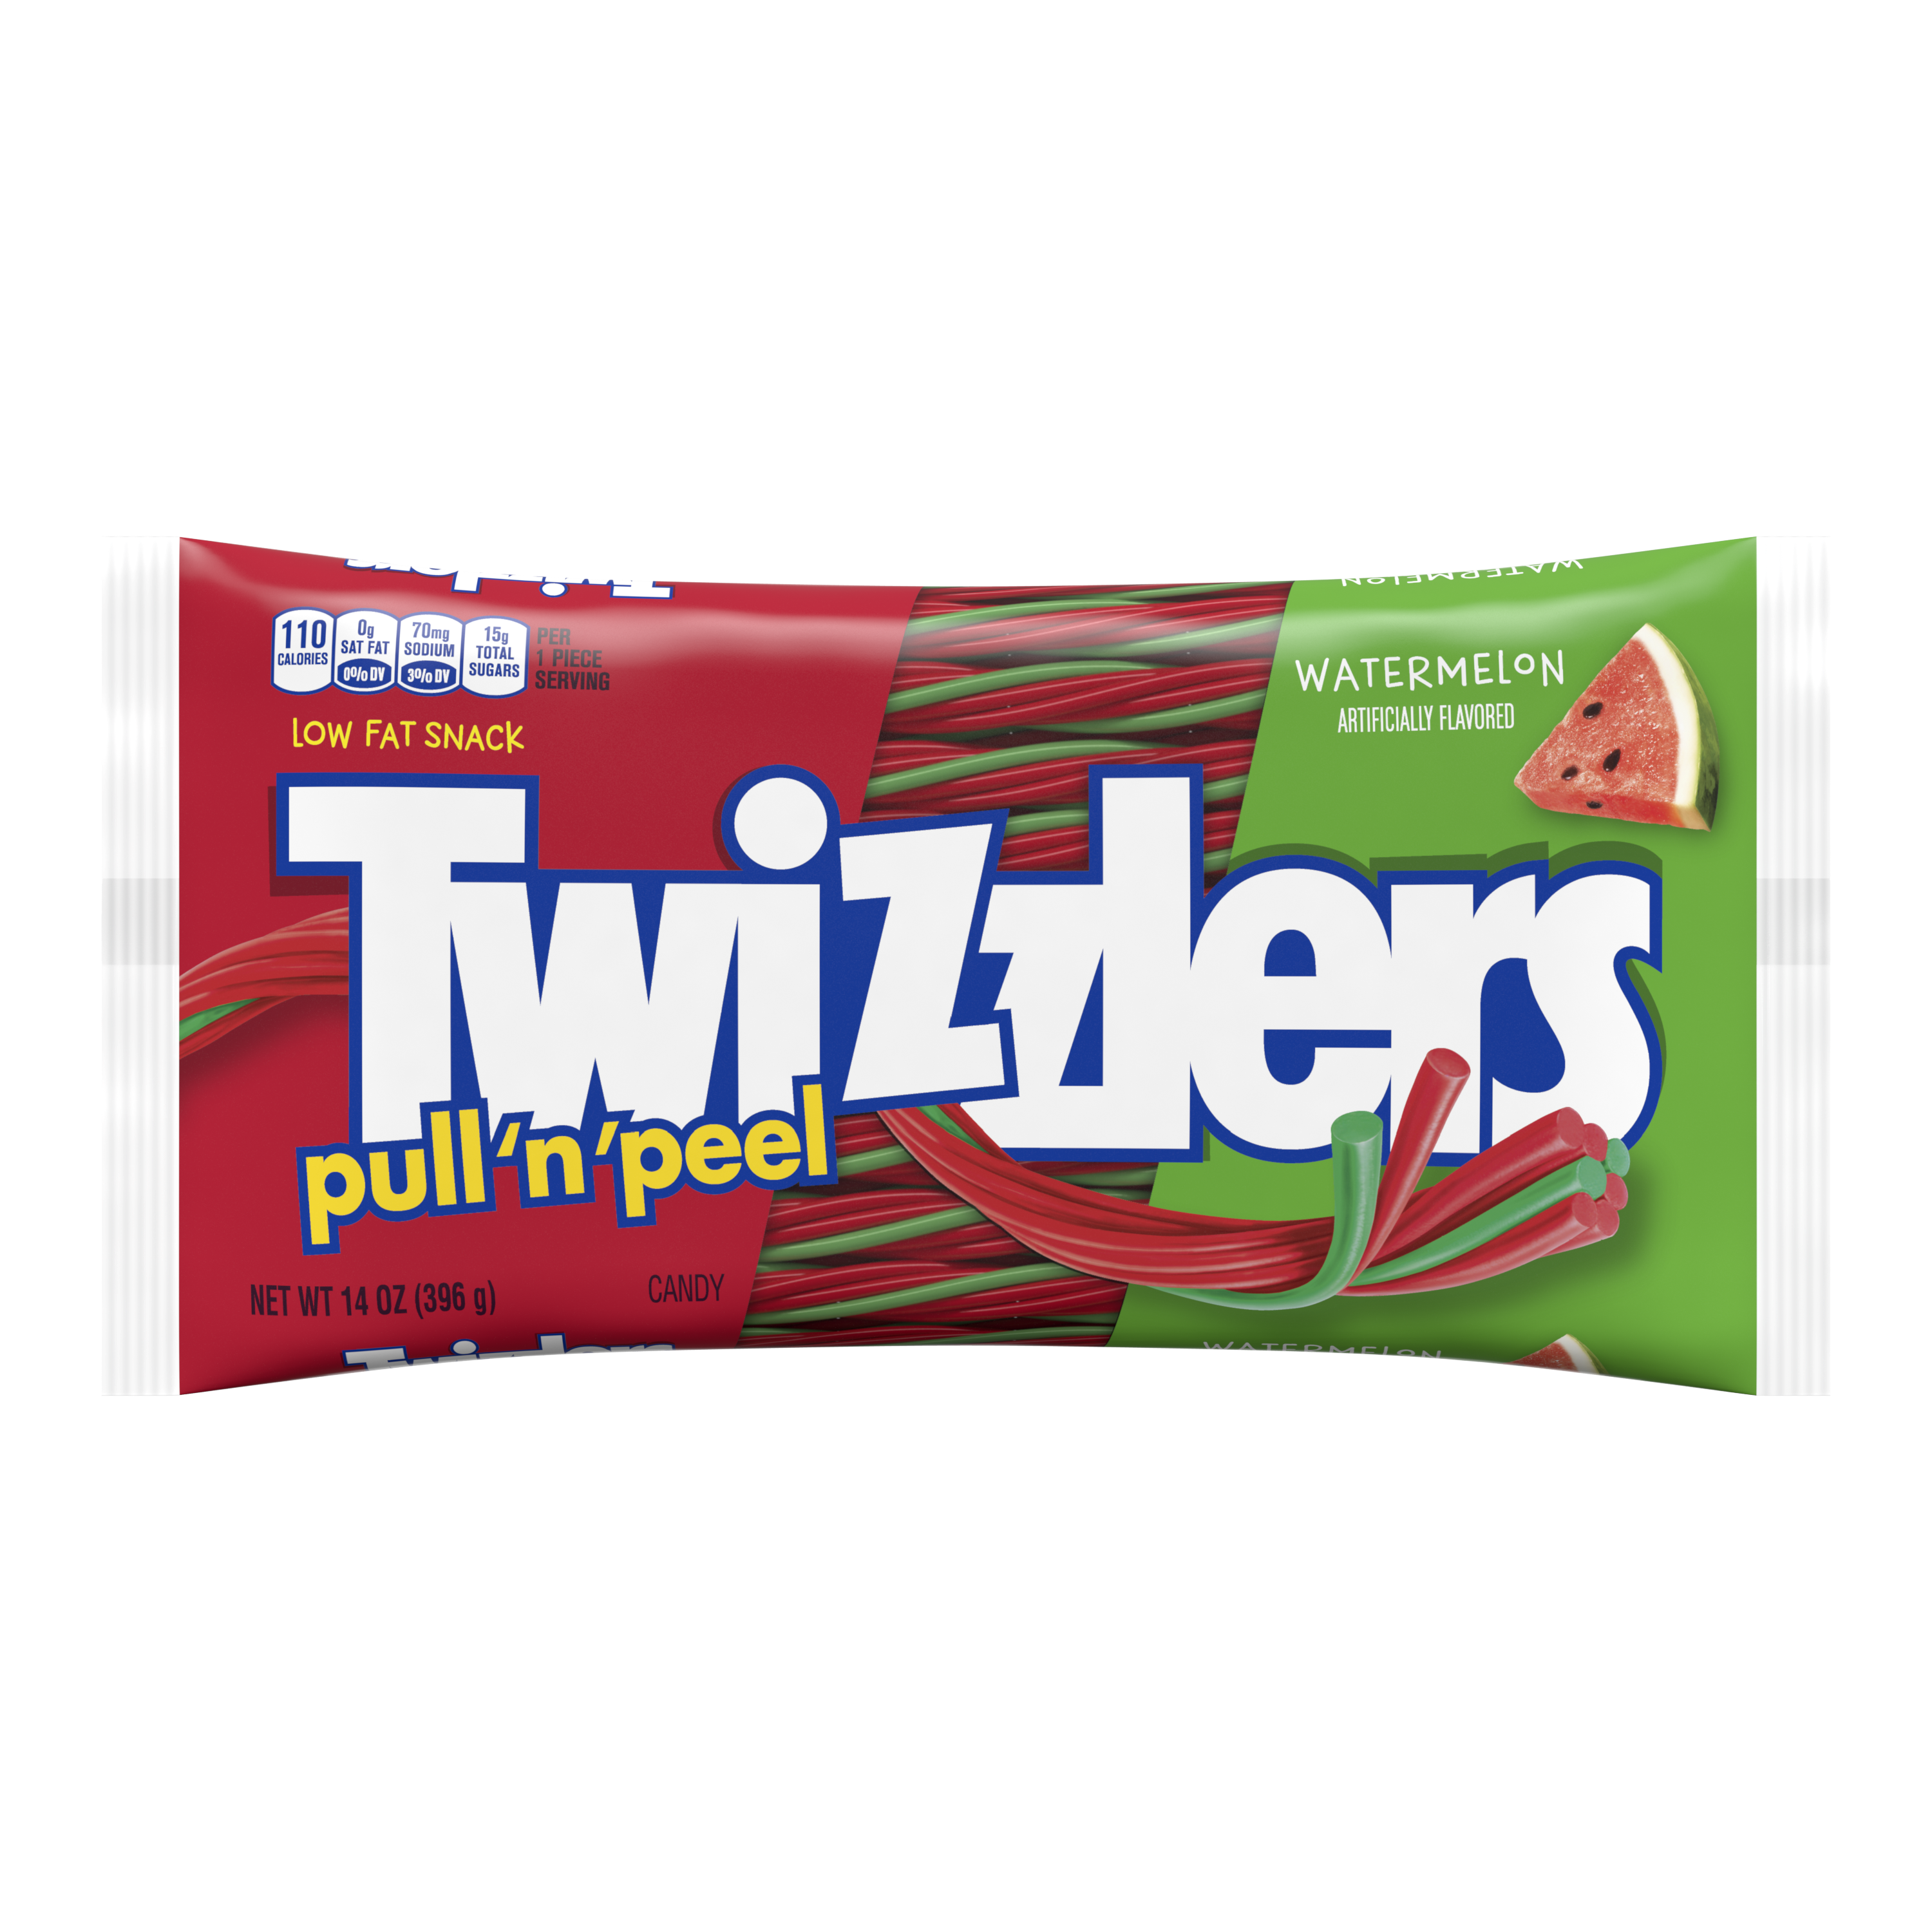 TWIZZLERS PULL 'N' PEEL Watermelon Flavored Candy, 14 oz bag - Front of Package